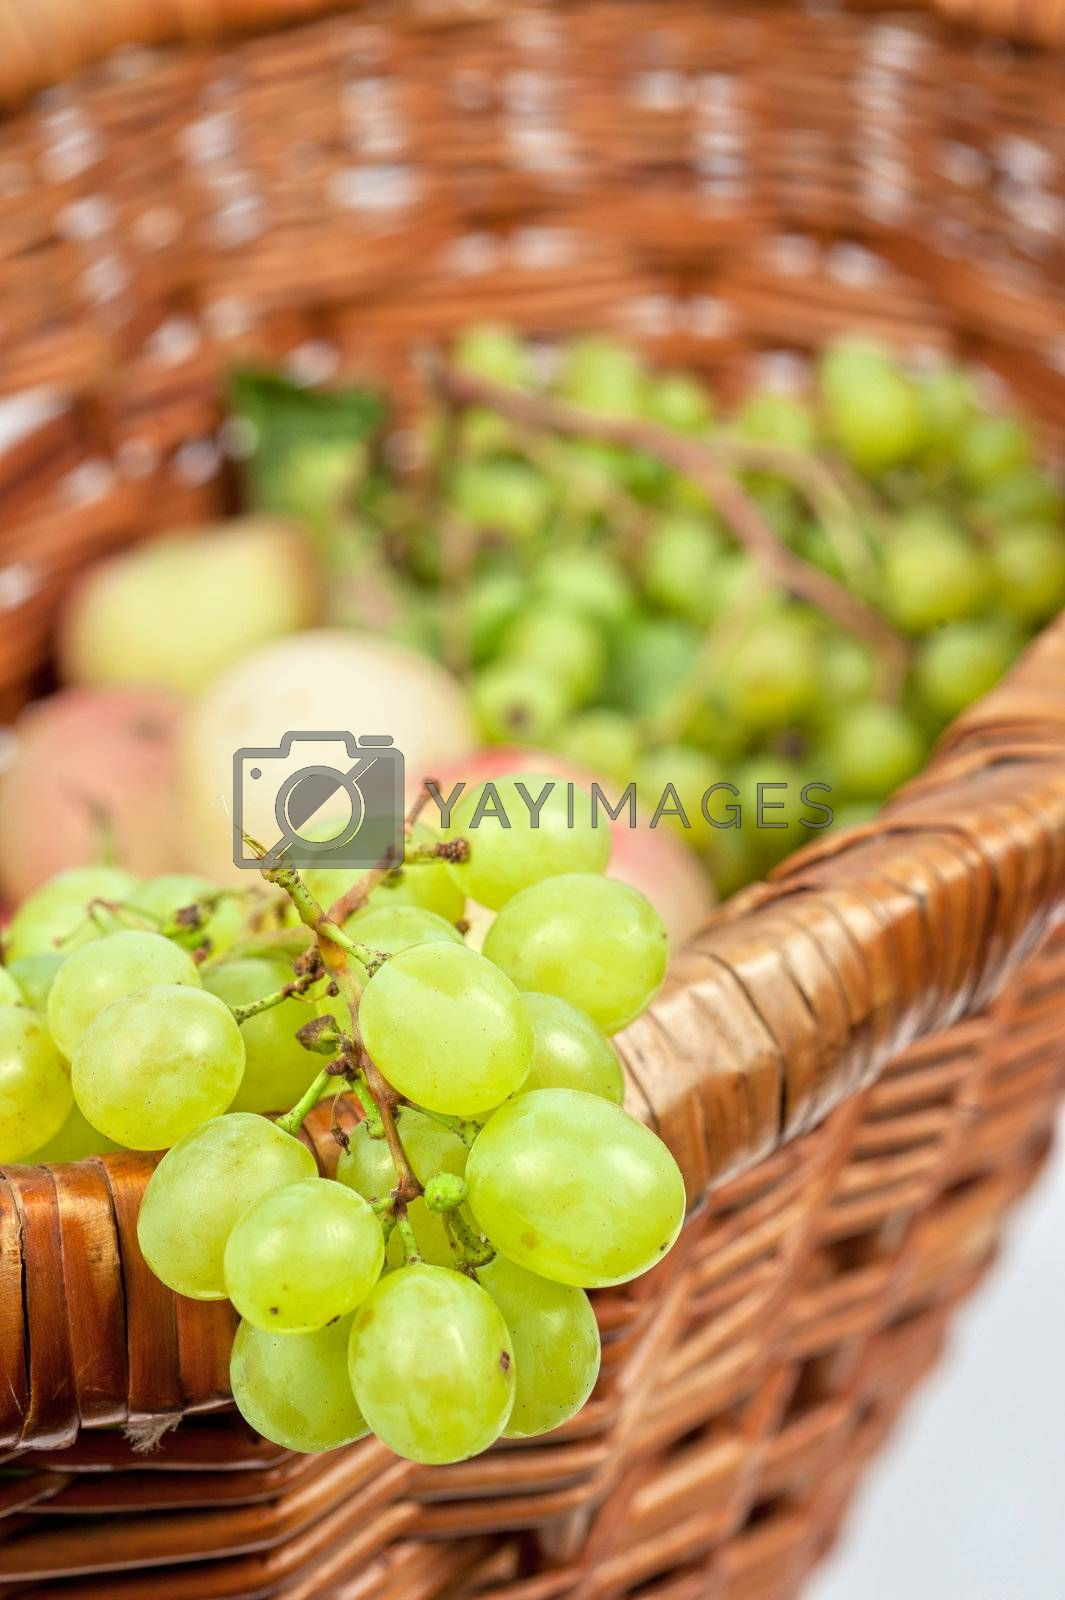 apples and grapes by rusak